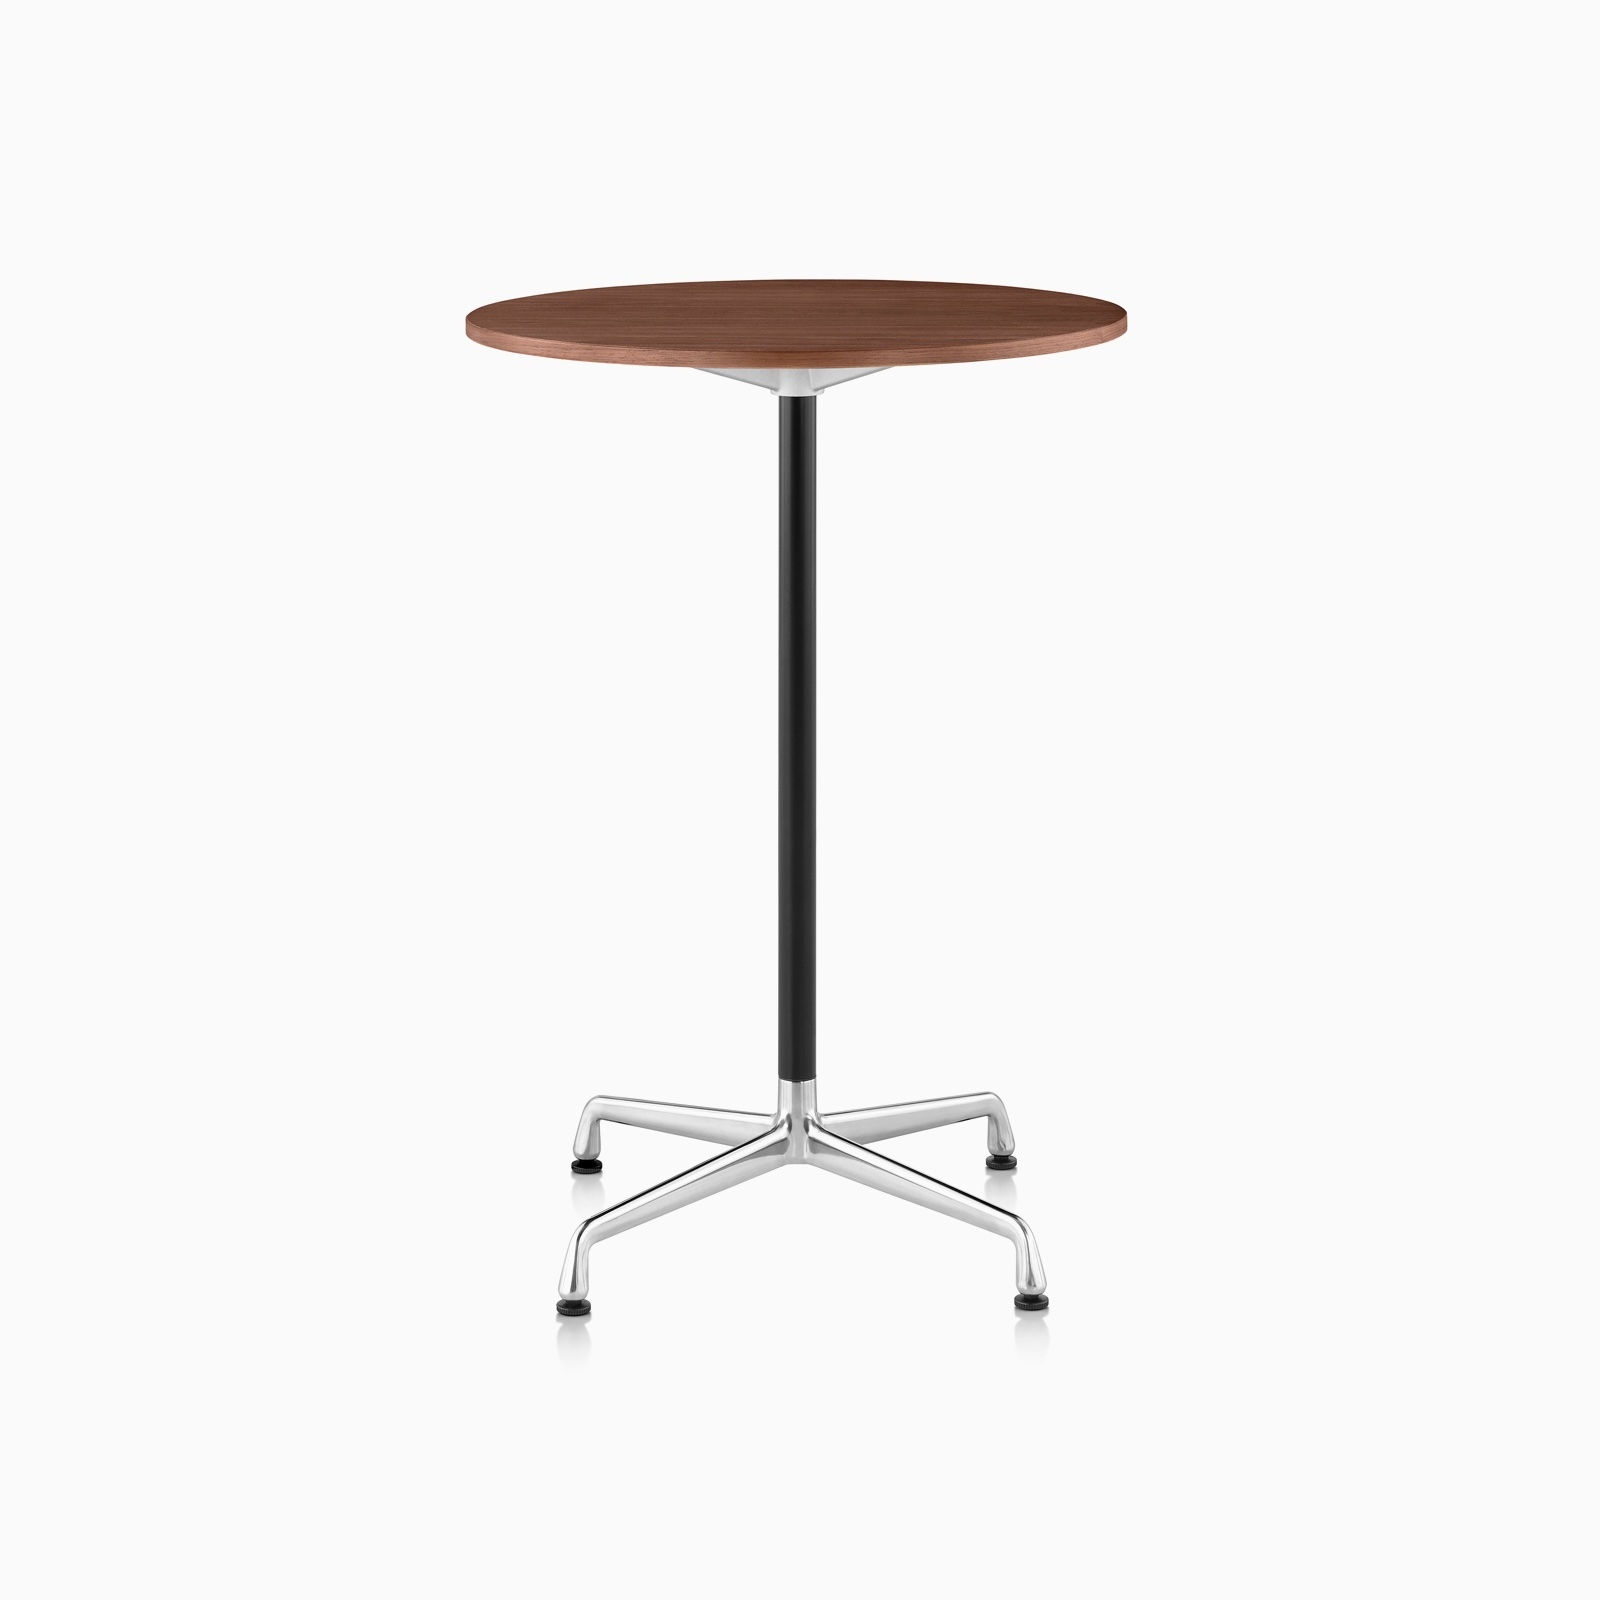 An Eames Standing Height Table featuring a Walnut Top and Polished Aluminum Base.